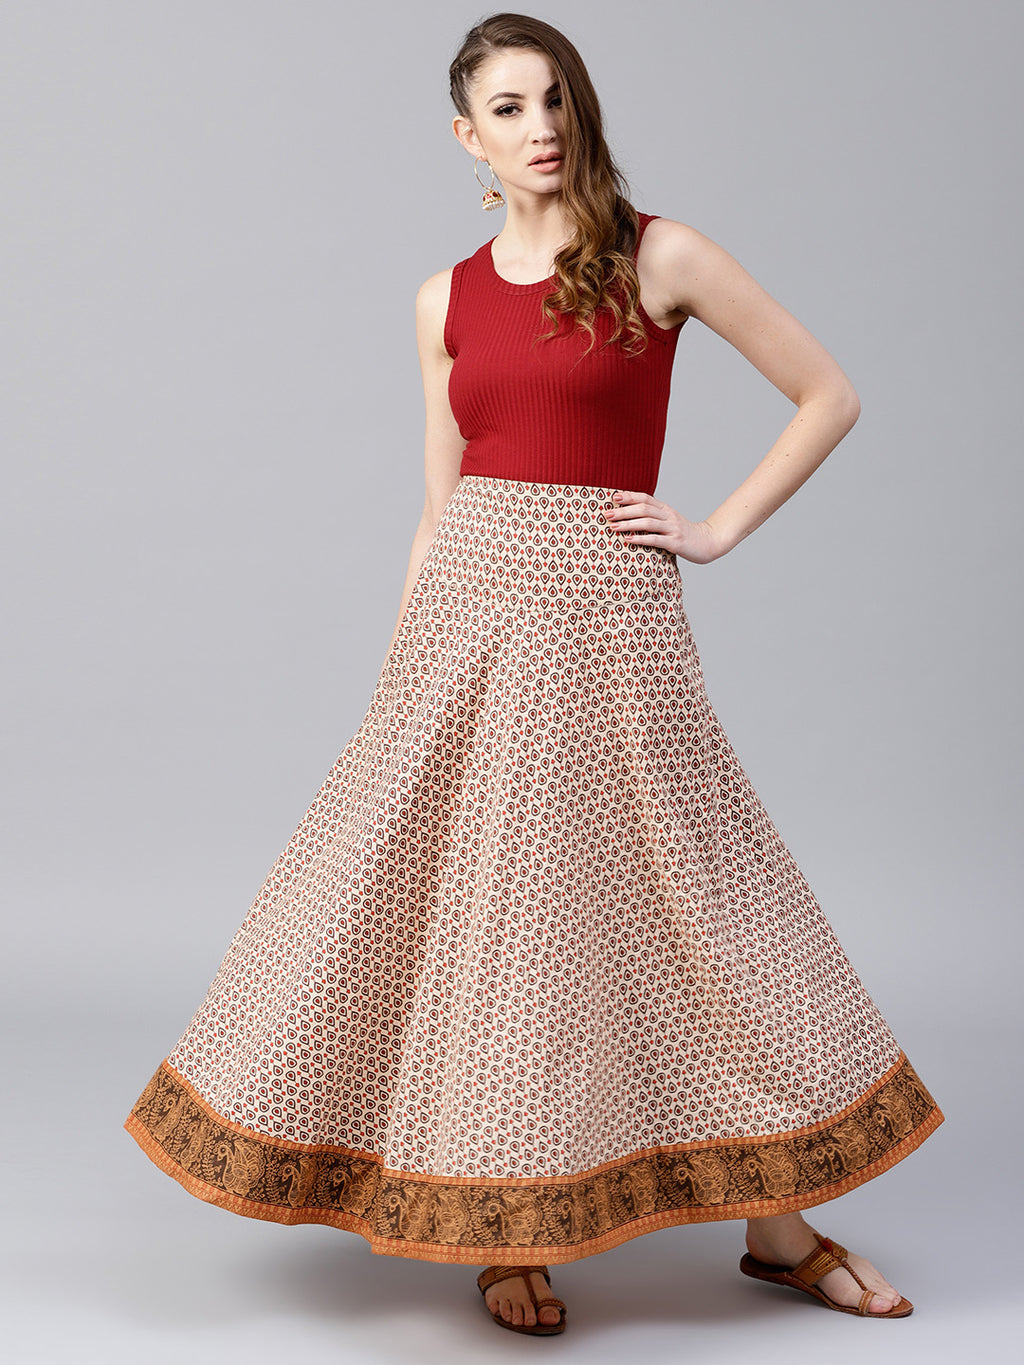 Beige & Brown Printed Flared Skirt | Znx4ever.com